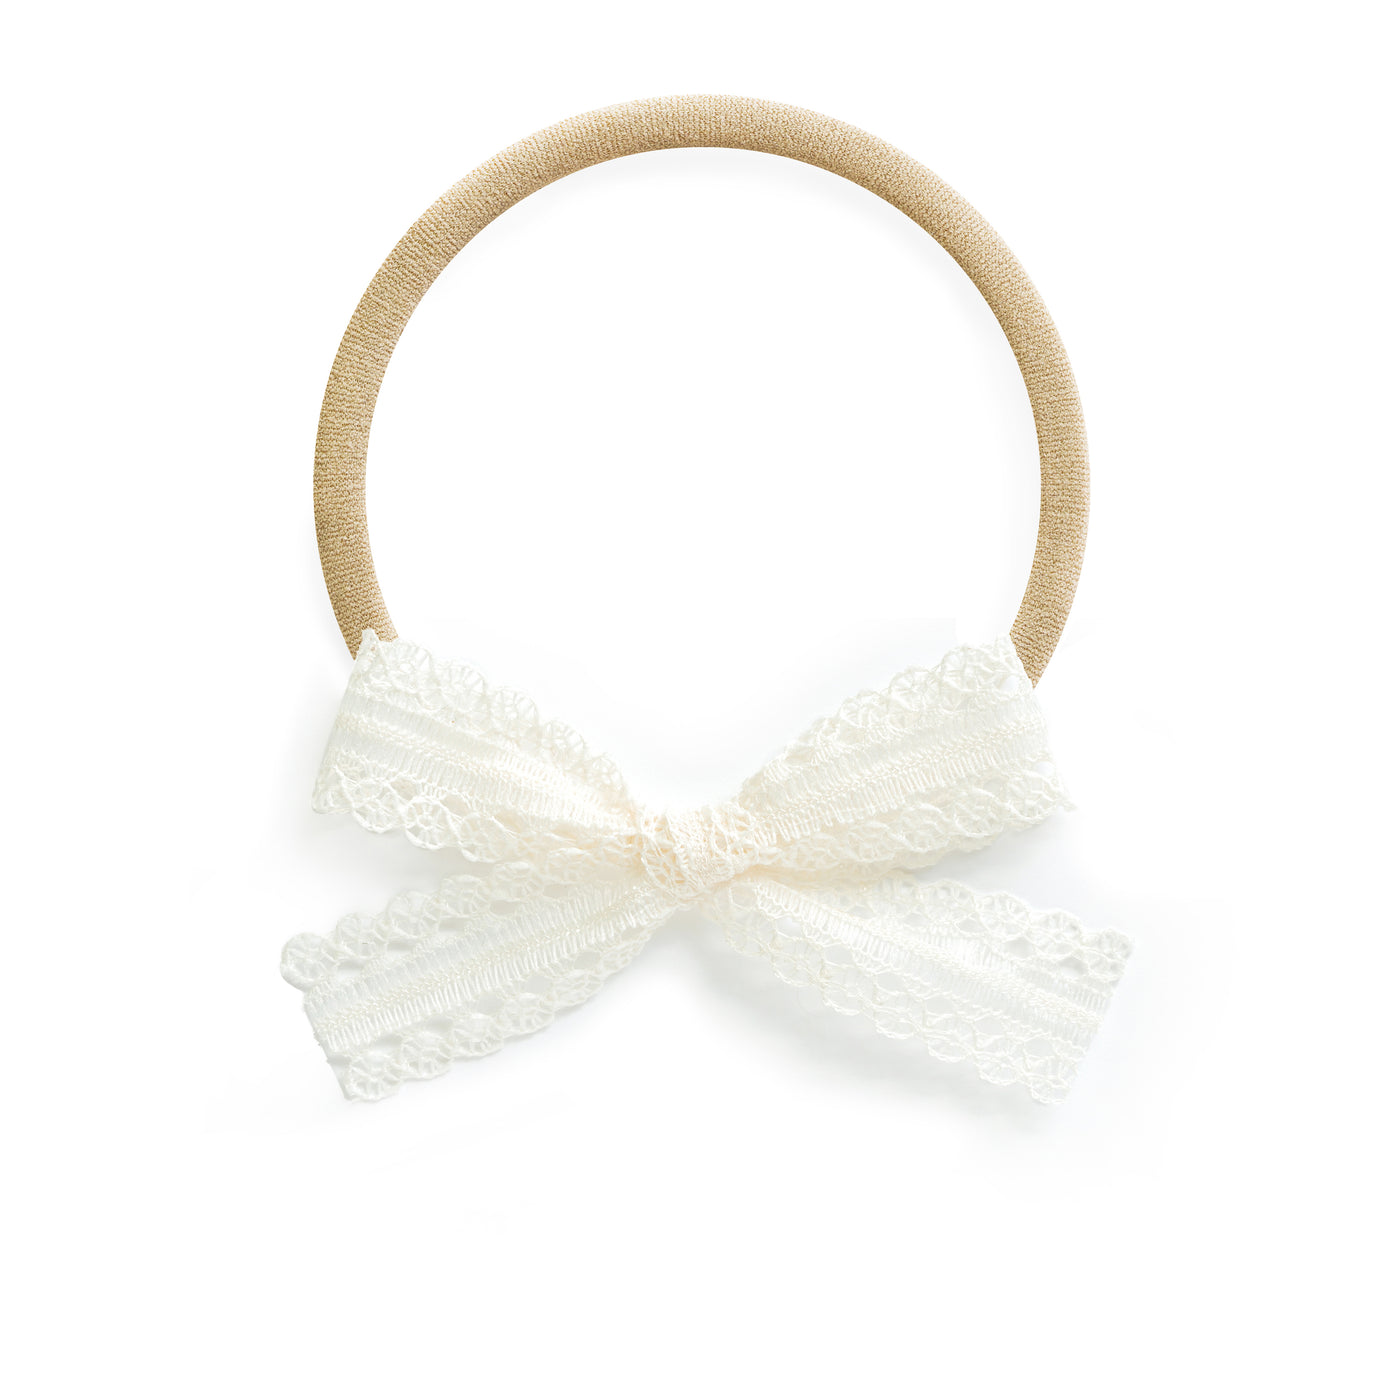 stretchy one size fits all baby bow headband white lace gift